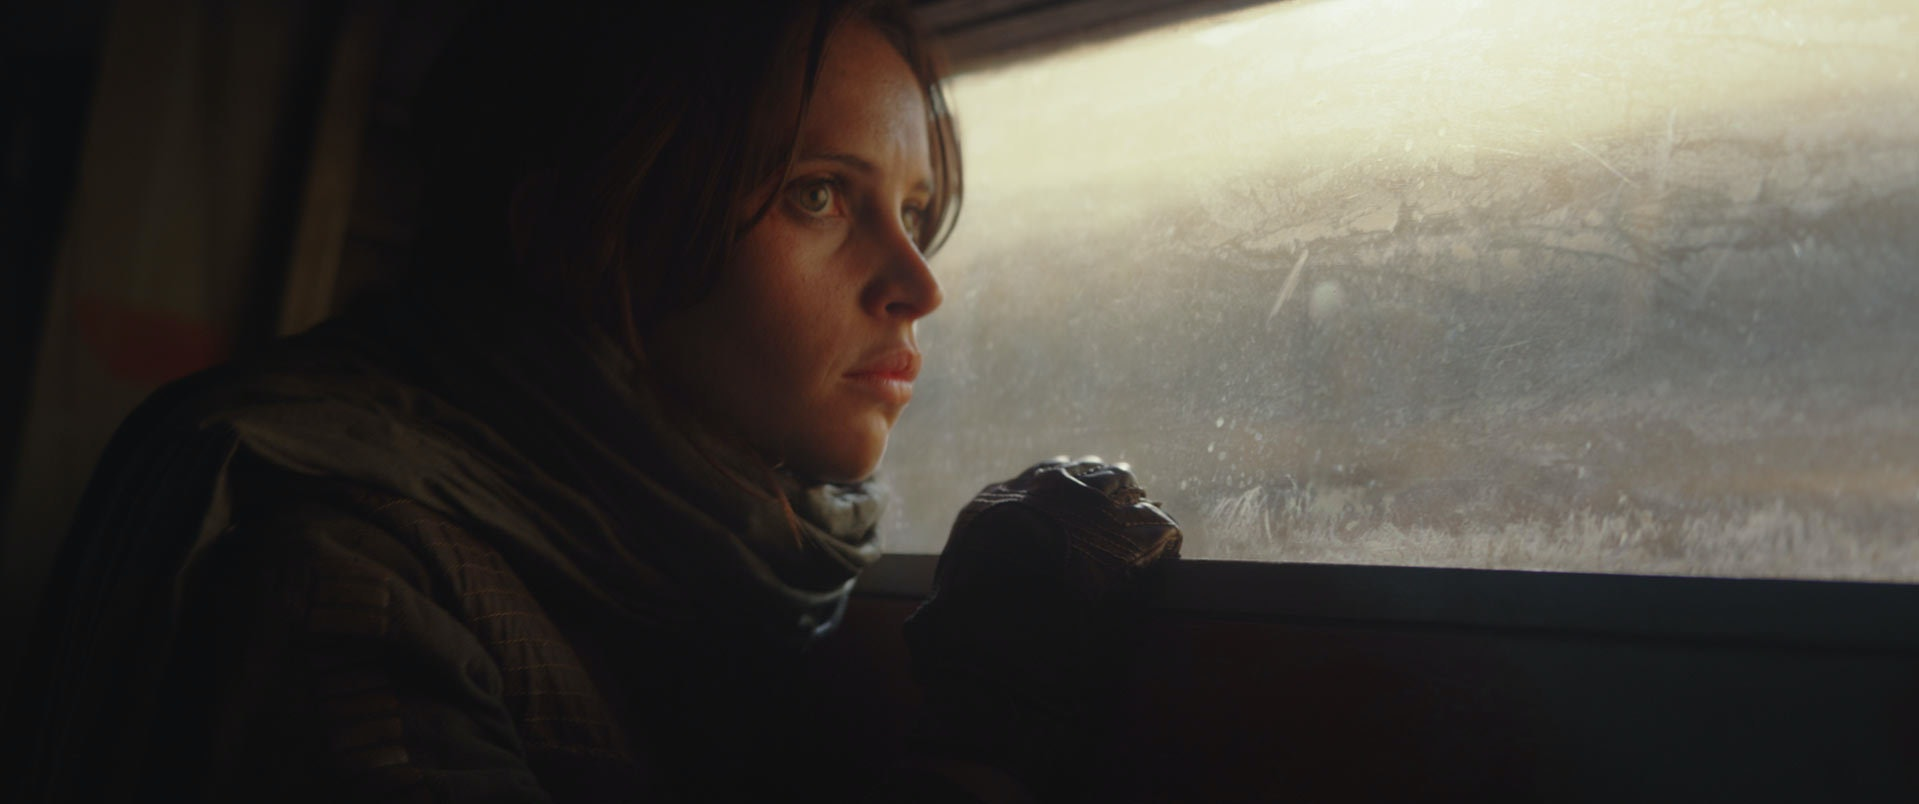 Jyn Erso in 'Rogue One: A Star Wars Story'